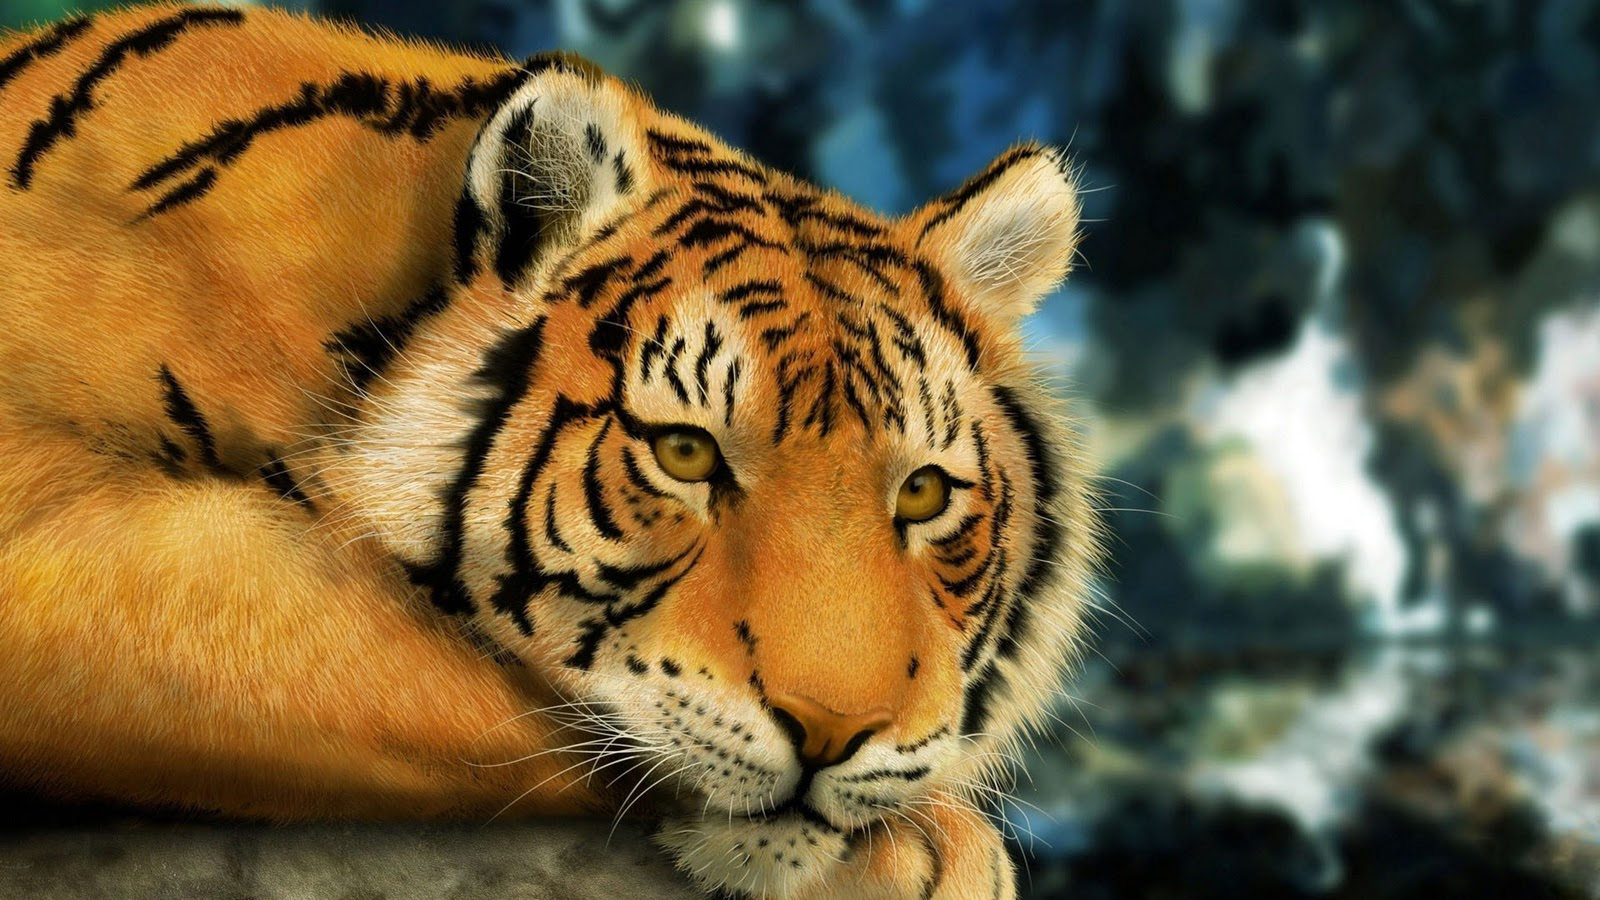 Images of a Tiger Lying Down 192.99 Kb